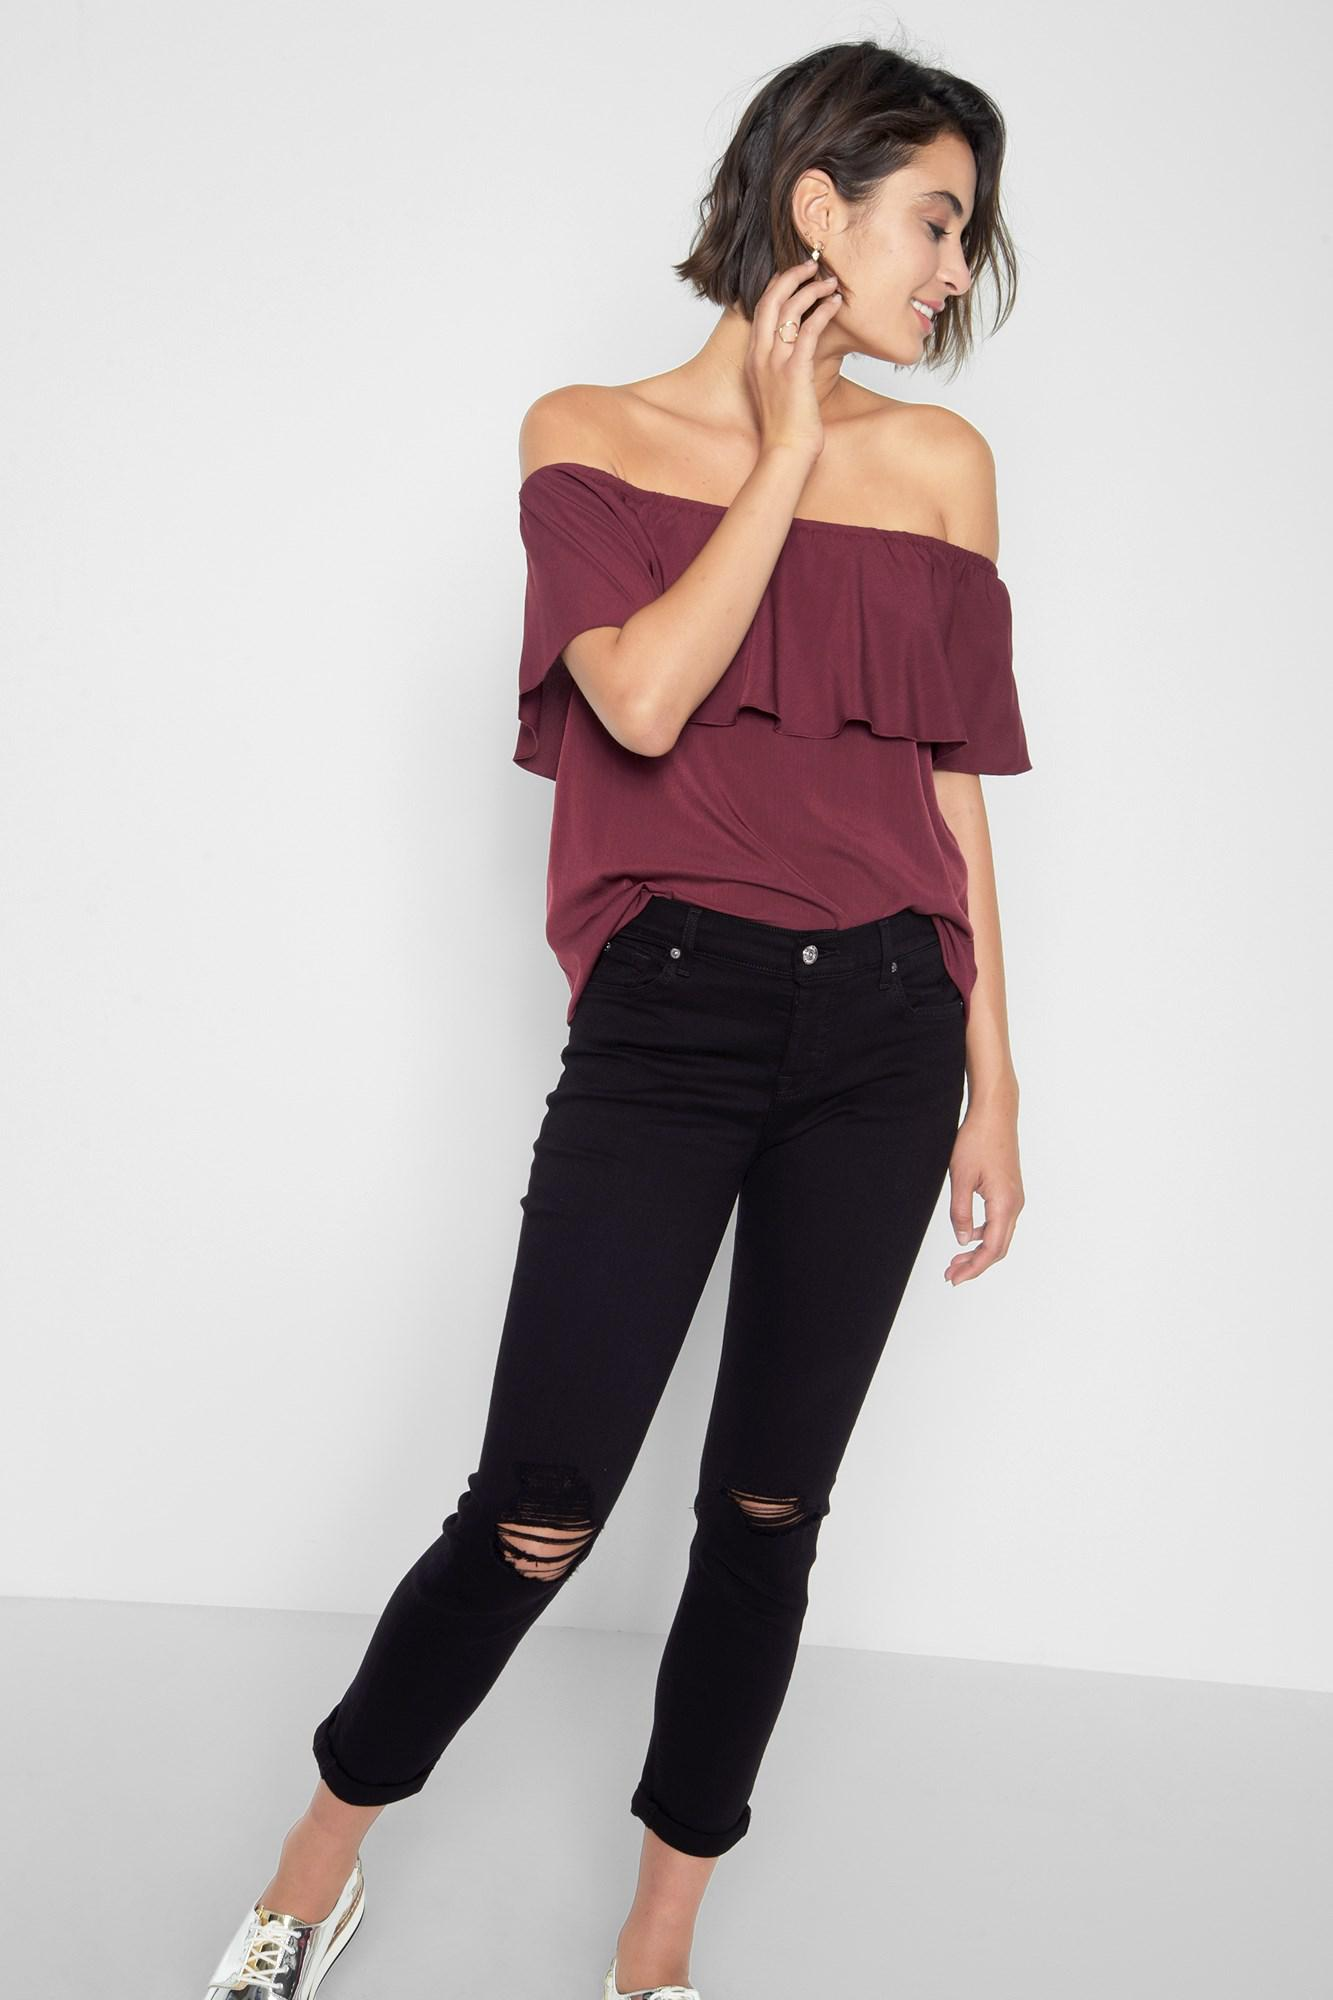 f5e940e7be6 Lyst - 7 For All Mankind Off Shoulder Ruffle Top In Burgundy in Purple